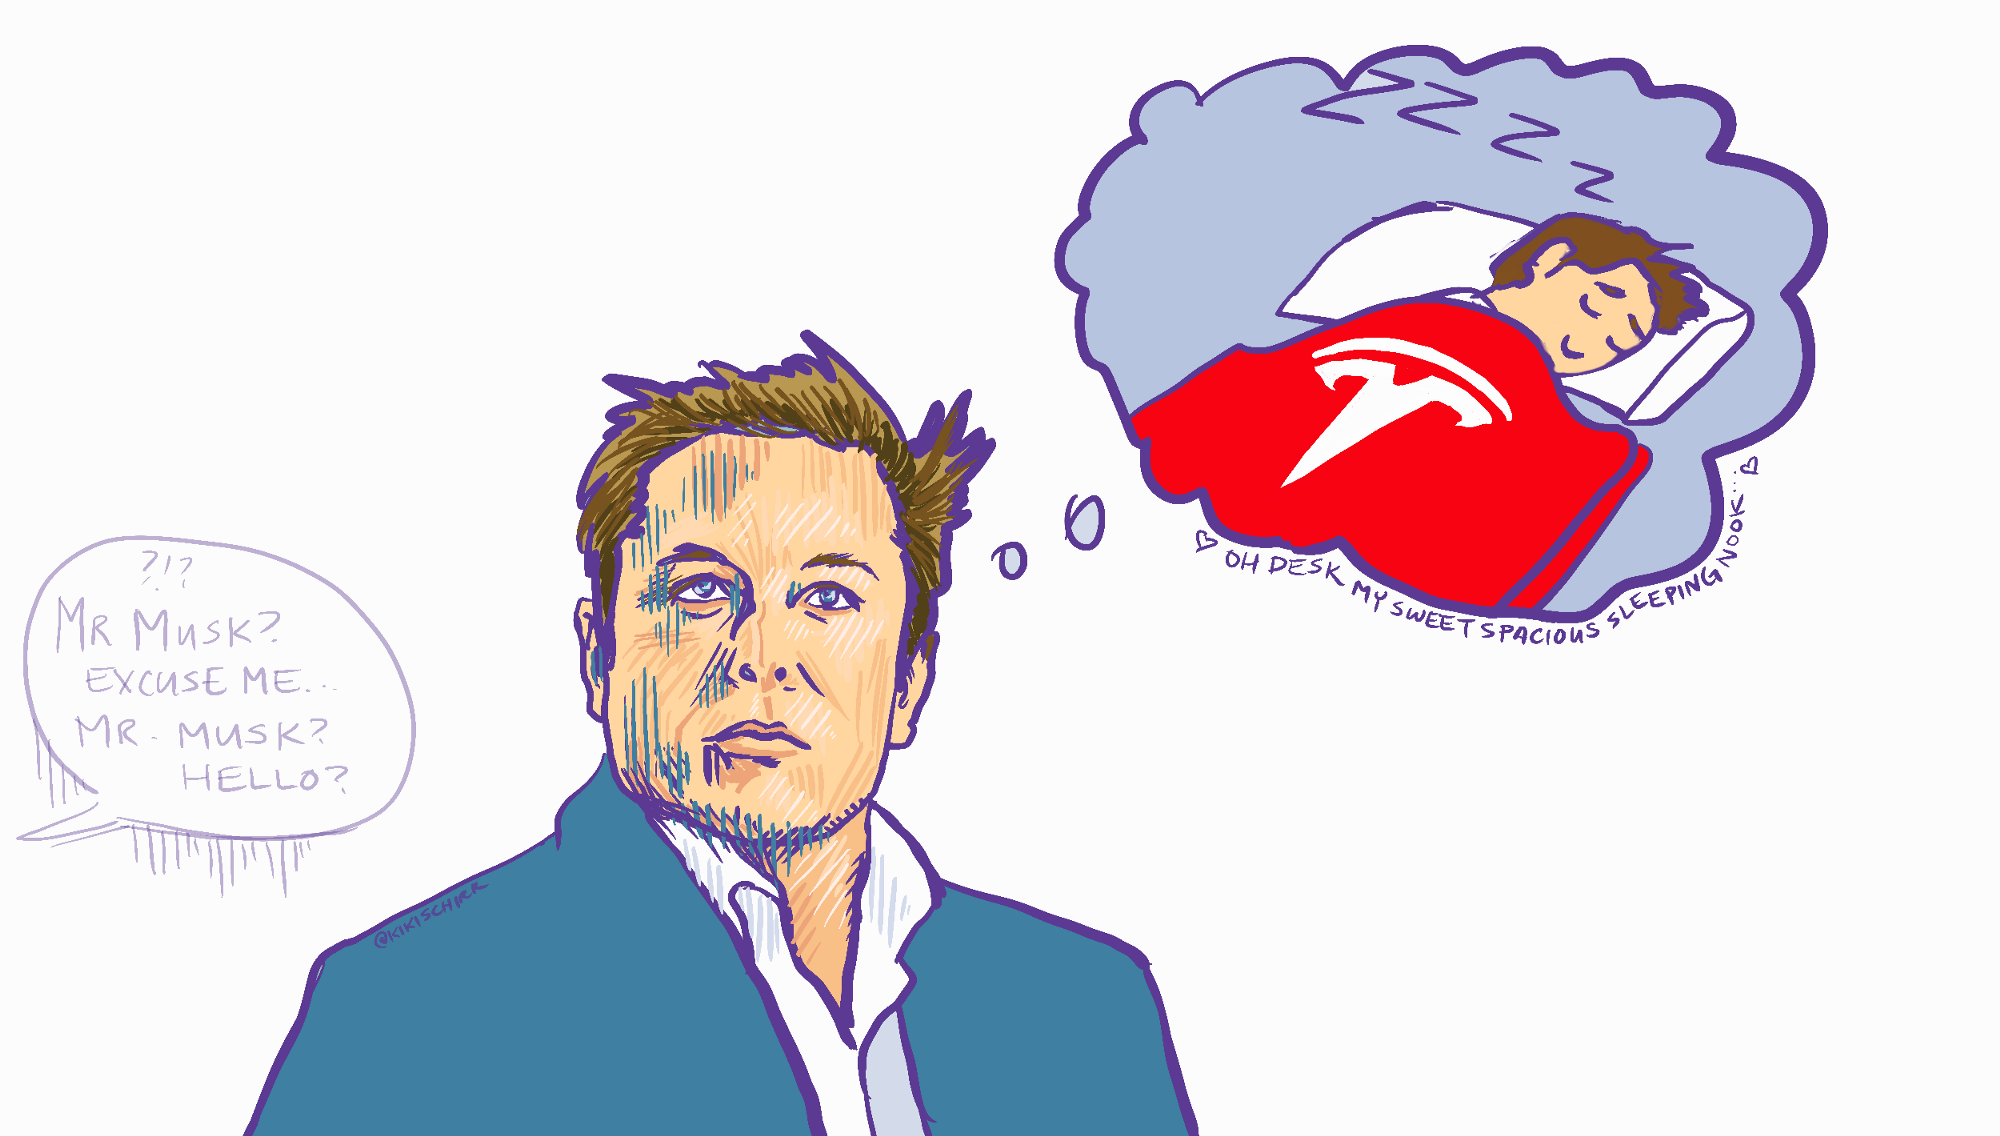 Elon Musk daydreams of his Tesla sleeping bag nestled in the shelter of his desk, while someone tries in vain to talk to him